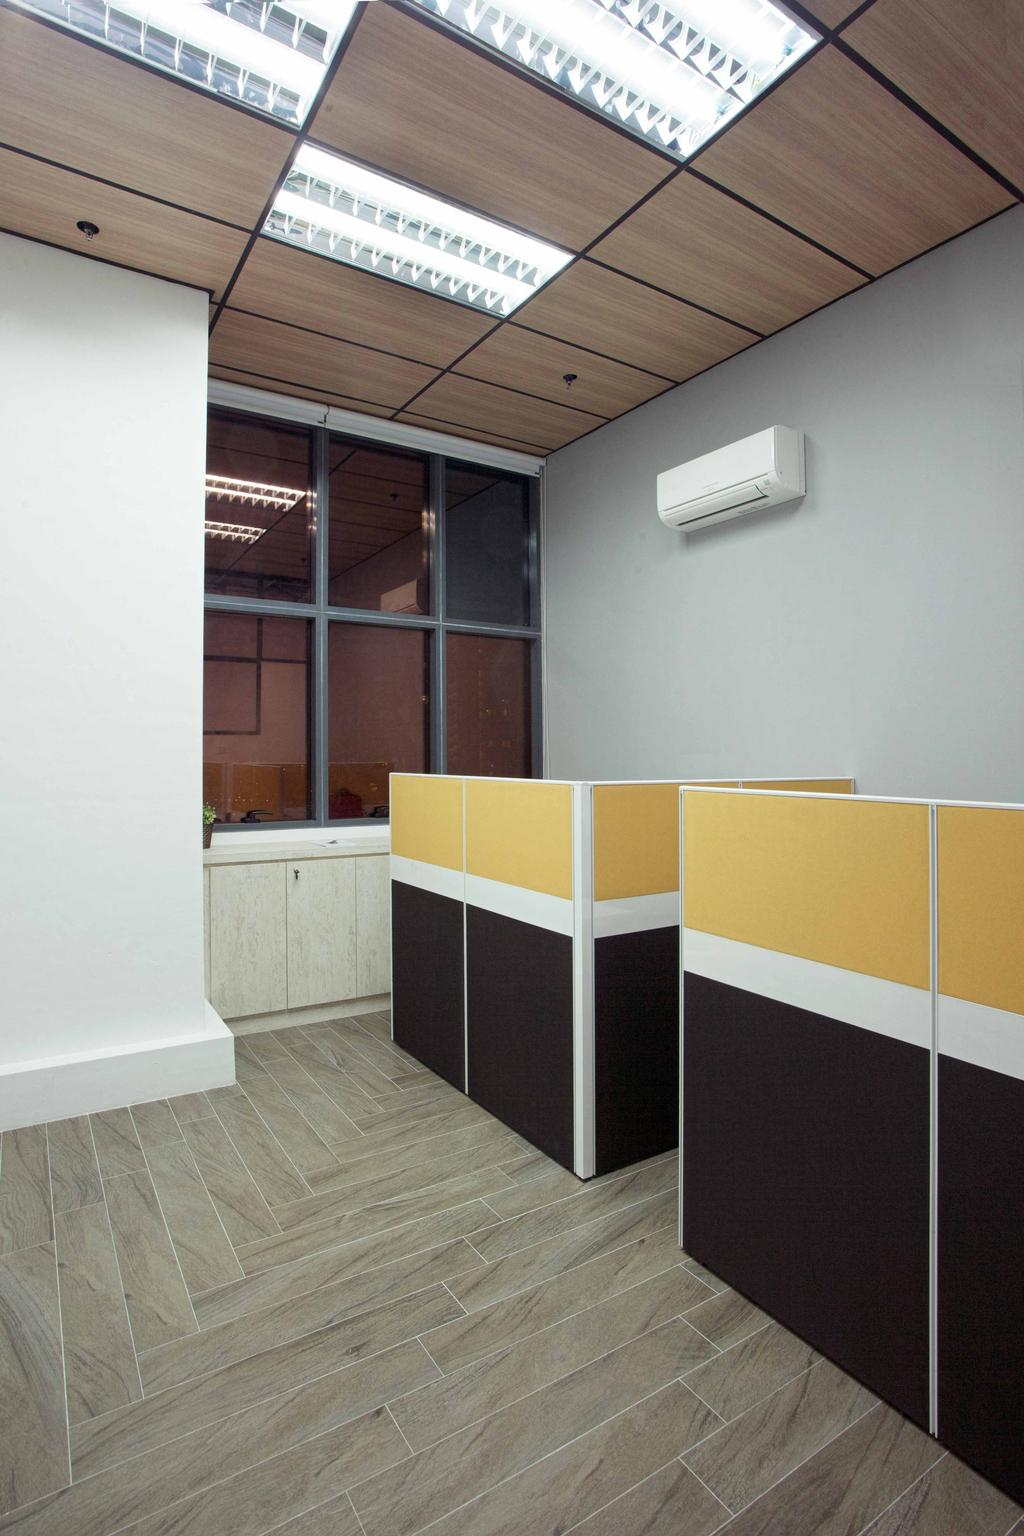 CT Hub 2 Office, Commercial, Interior Designer, Project Guru, Industrial, Eclectic, Air Conditioner, Furniture, Reception, Reception Desk, Table, Paper